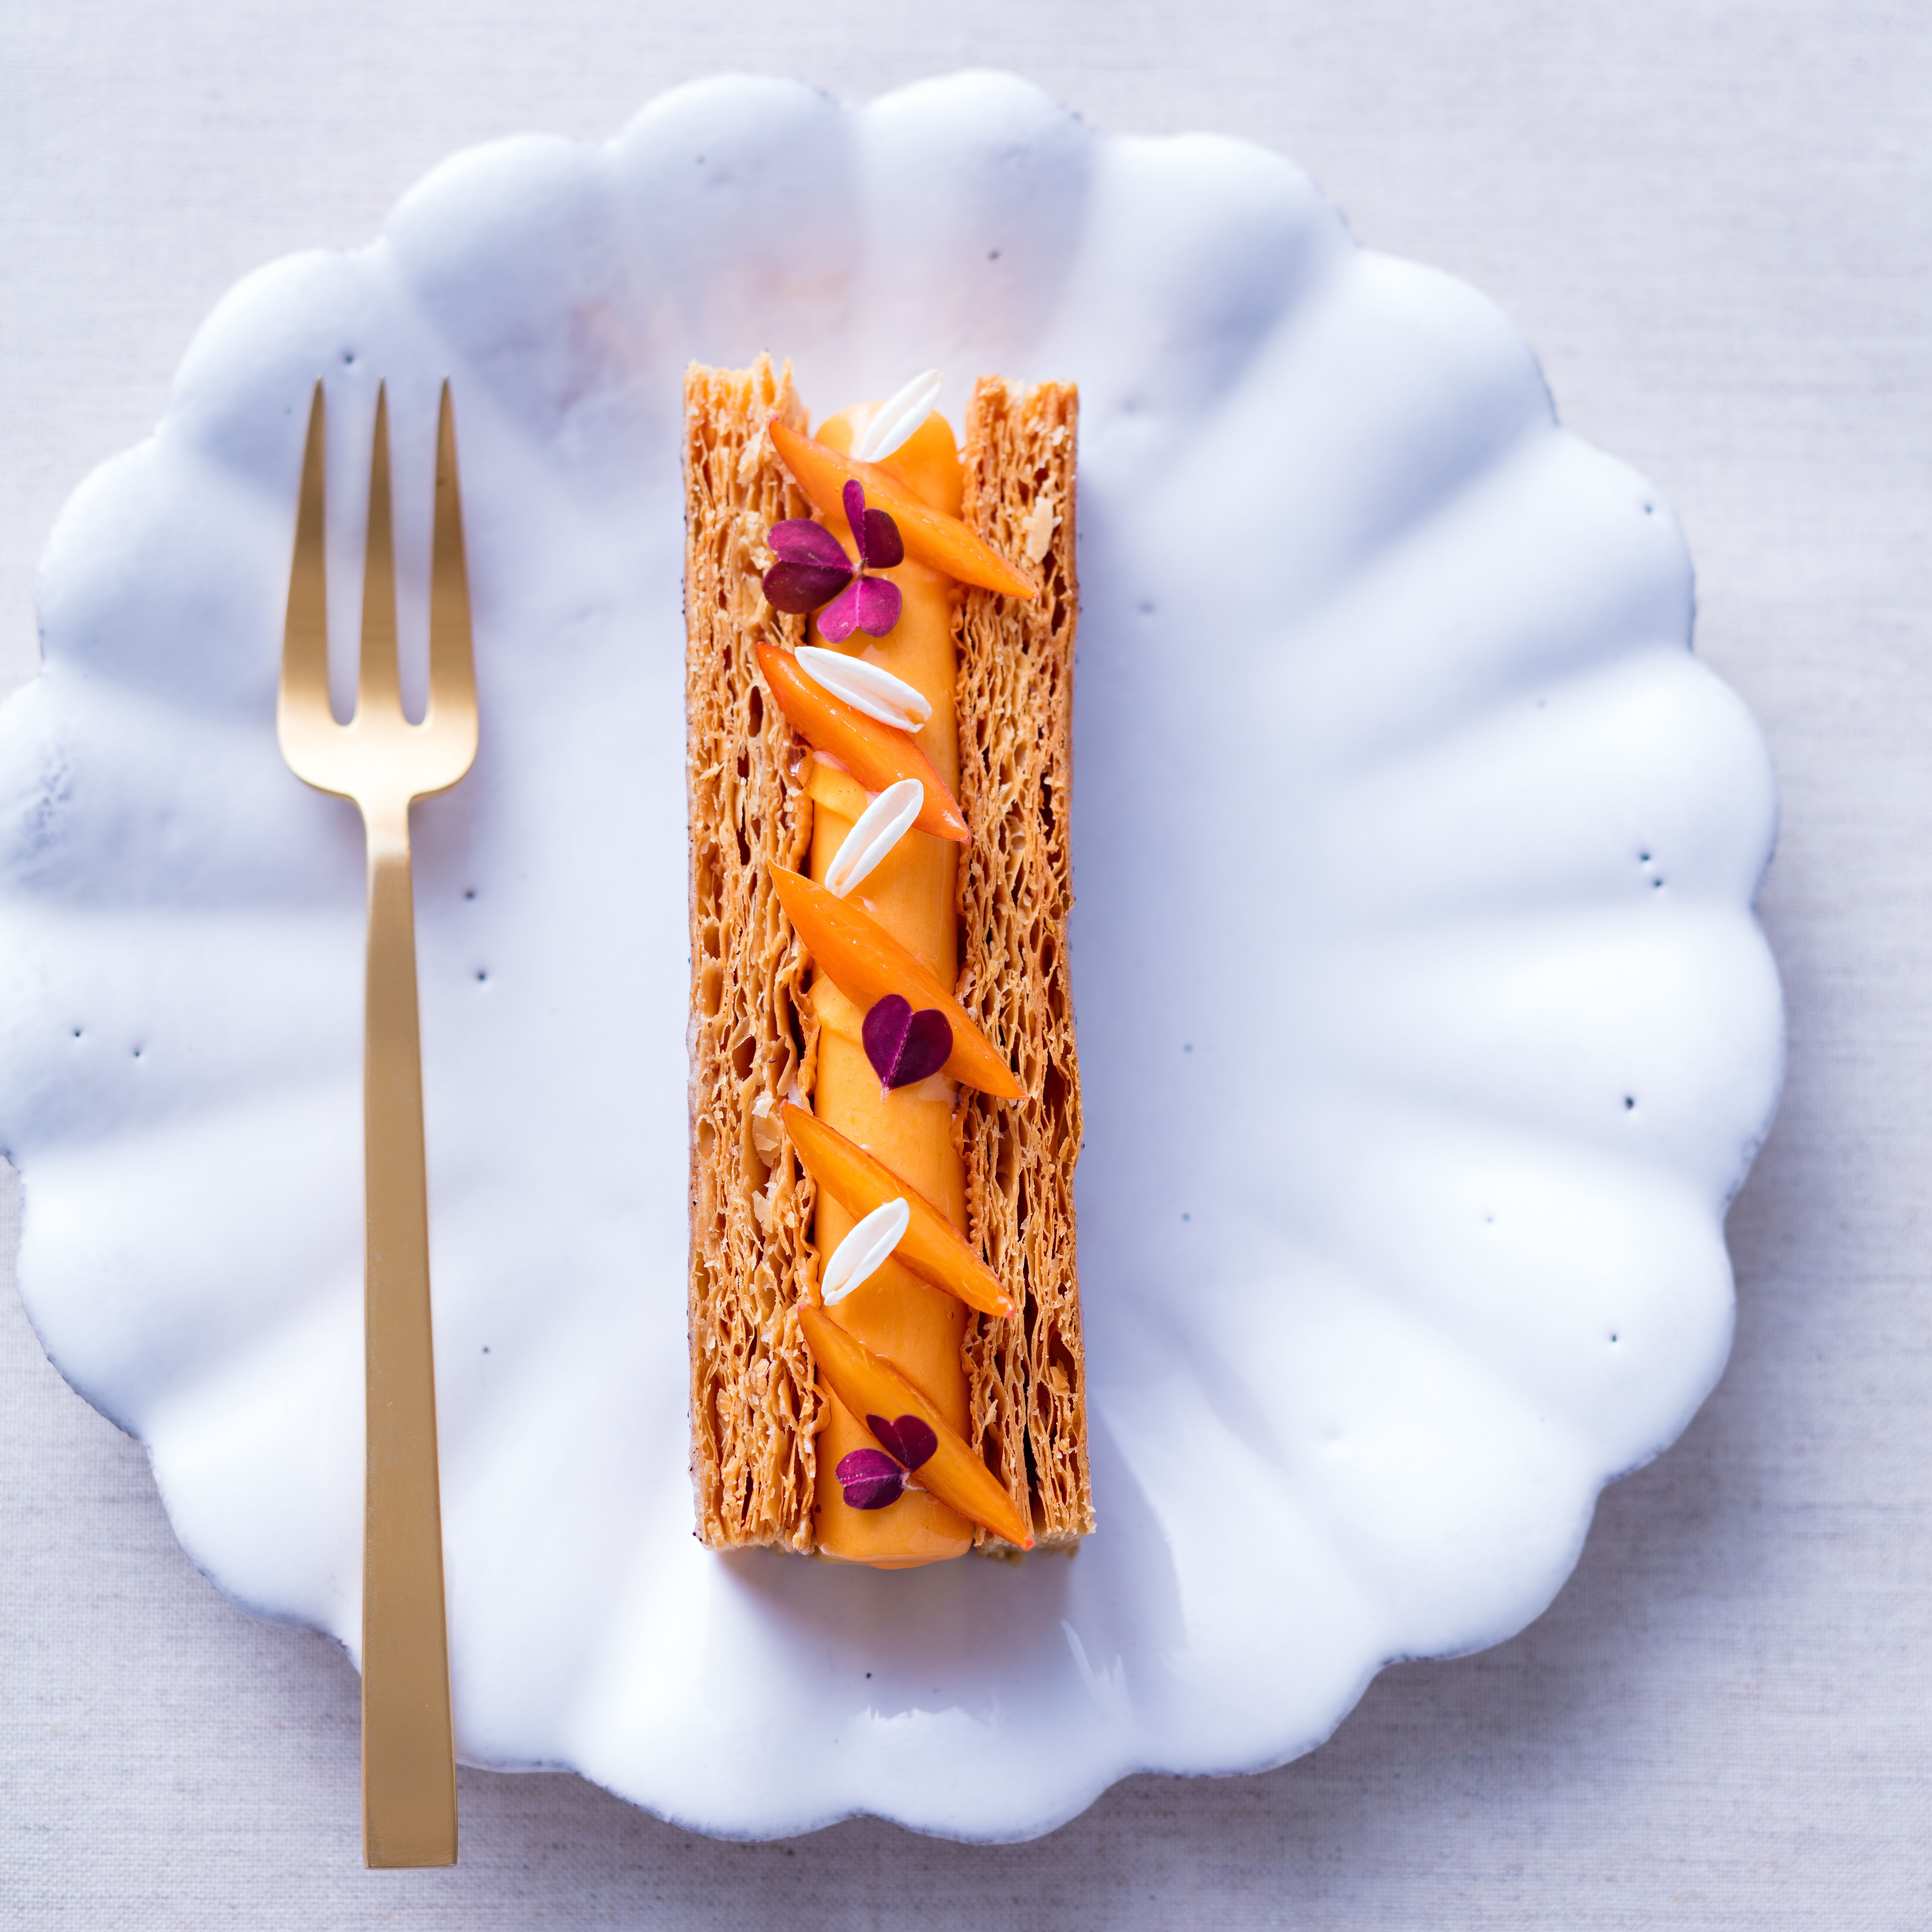 mille feuilles jpeg - Copie